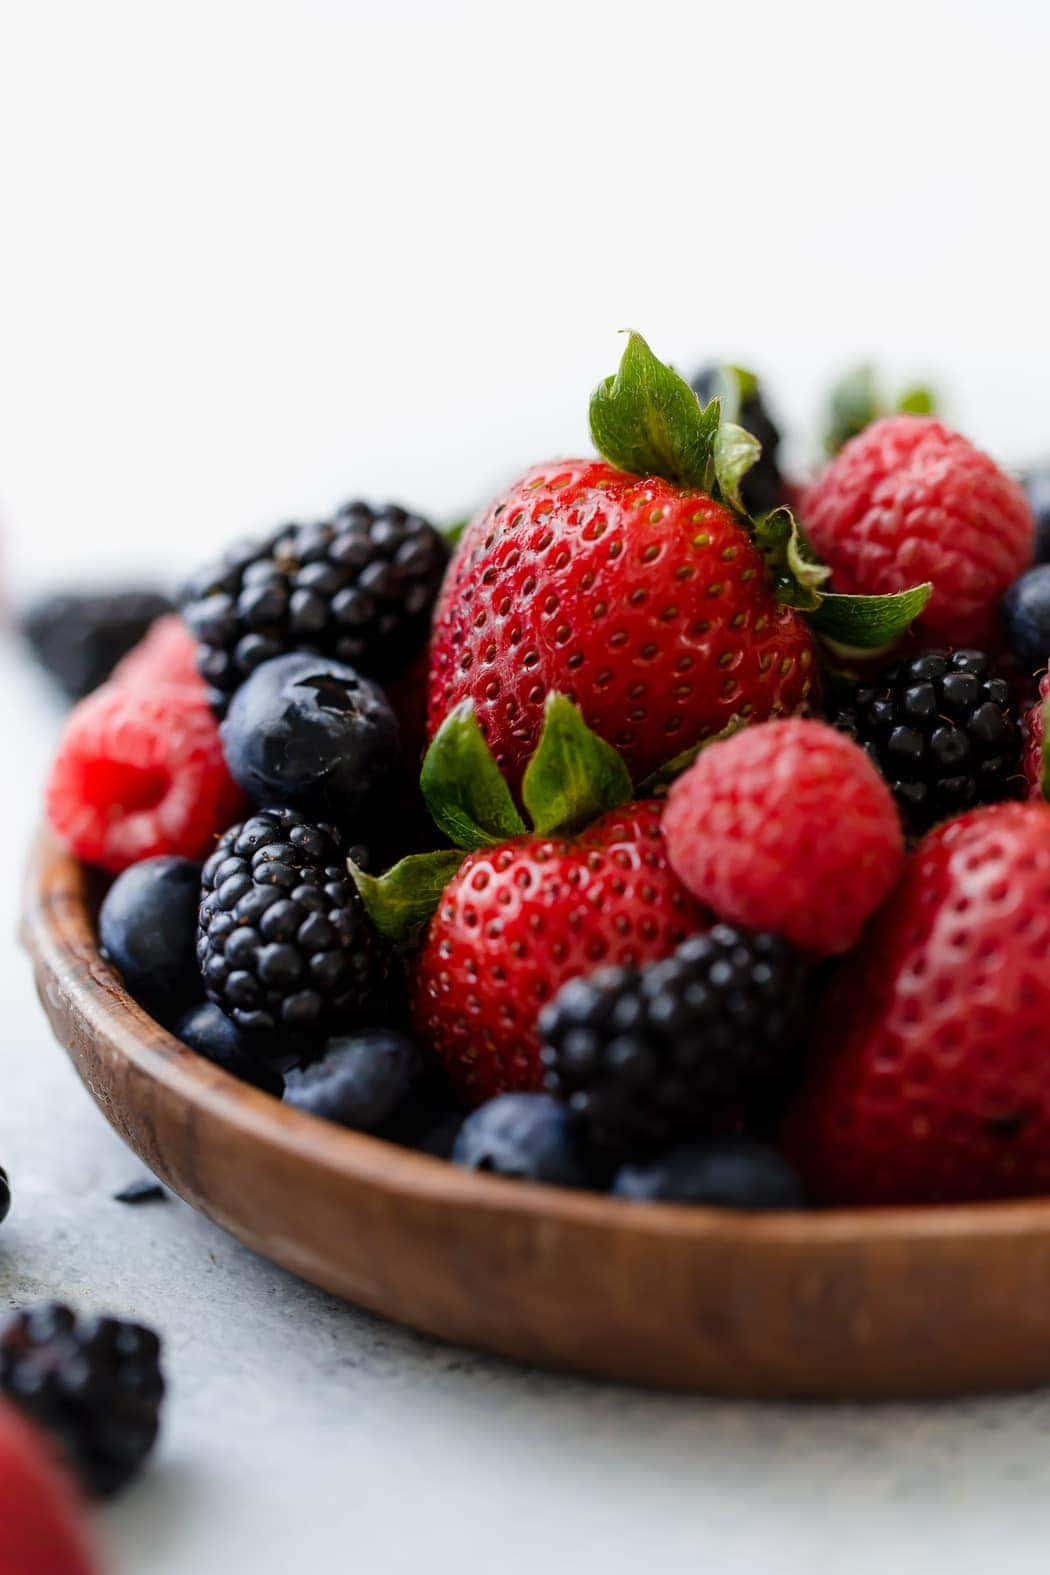 Close-up photo of a wooden plate with an assortment of berries.